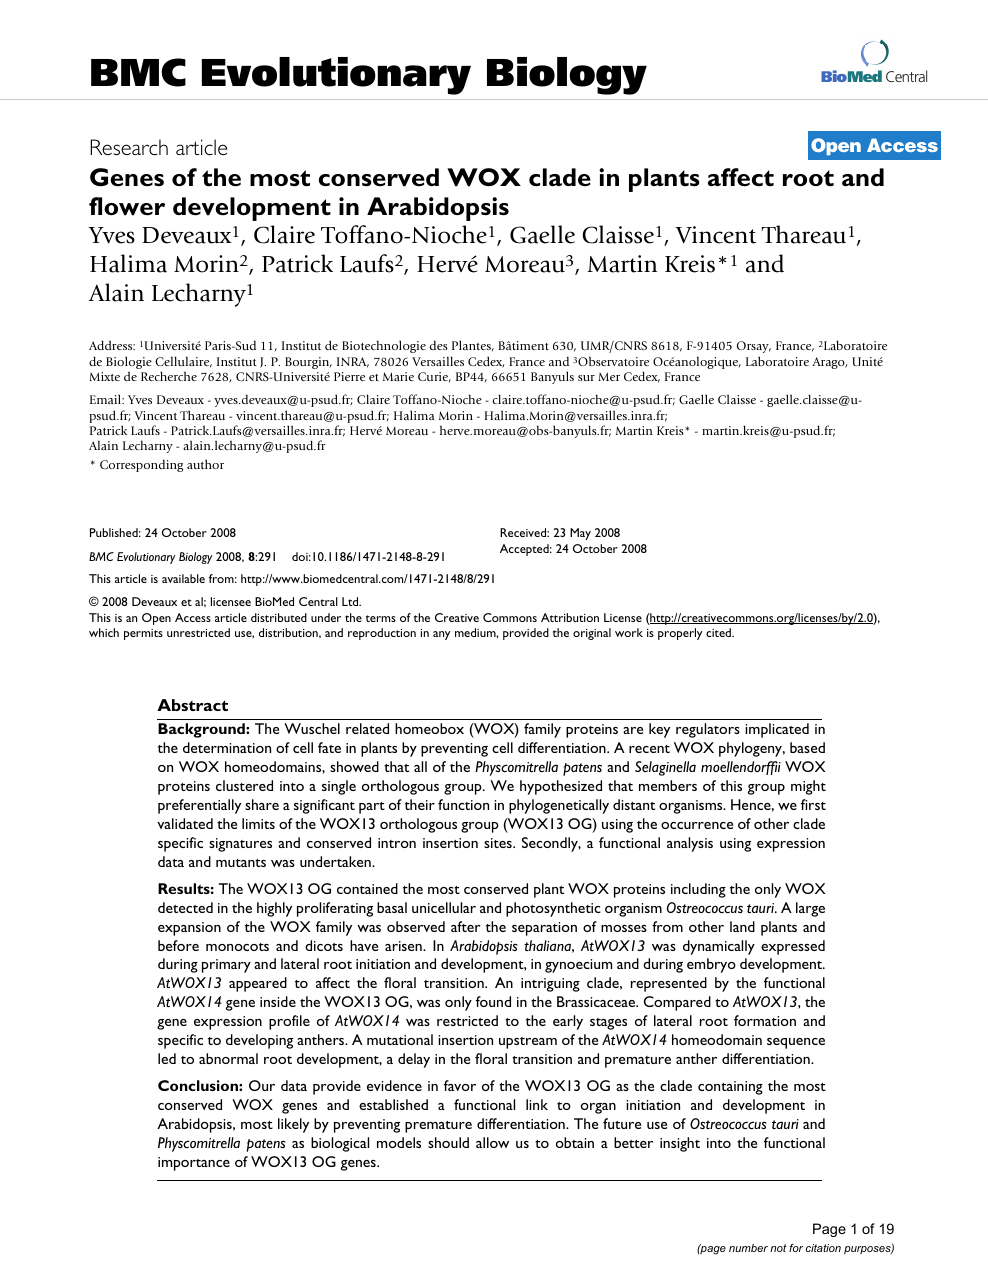 Genes of the most conserved WOX clade in plants affect root